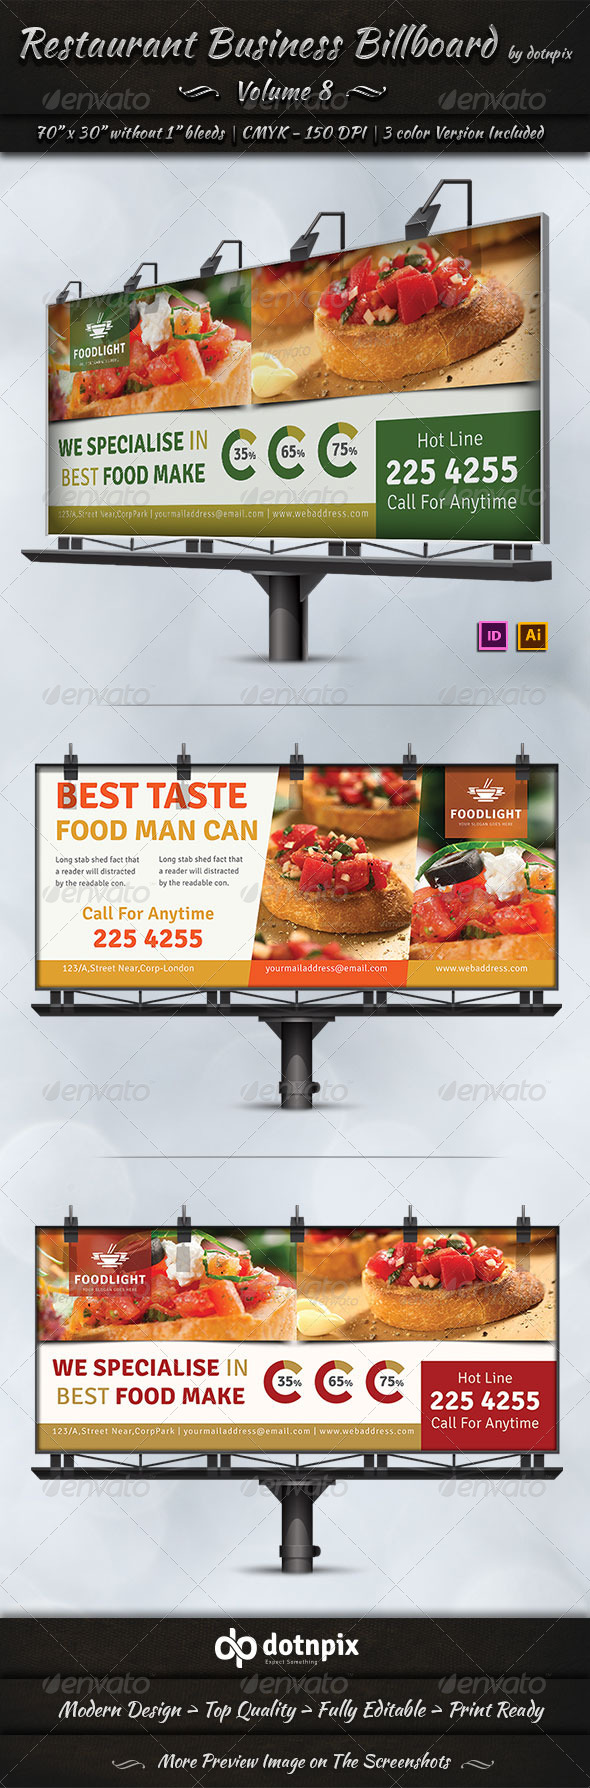 GraphicRiver Restaurant Business Billboard Volume 8 7801972